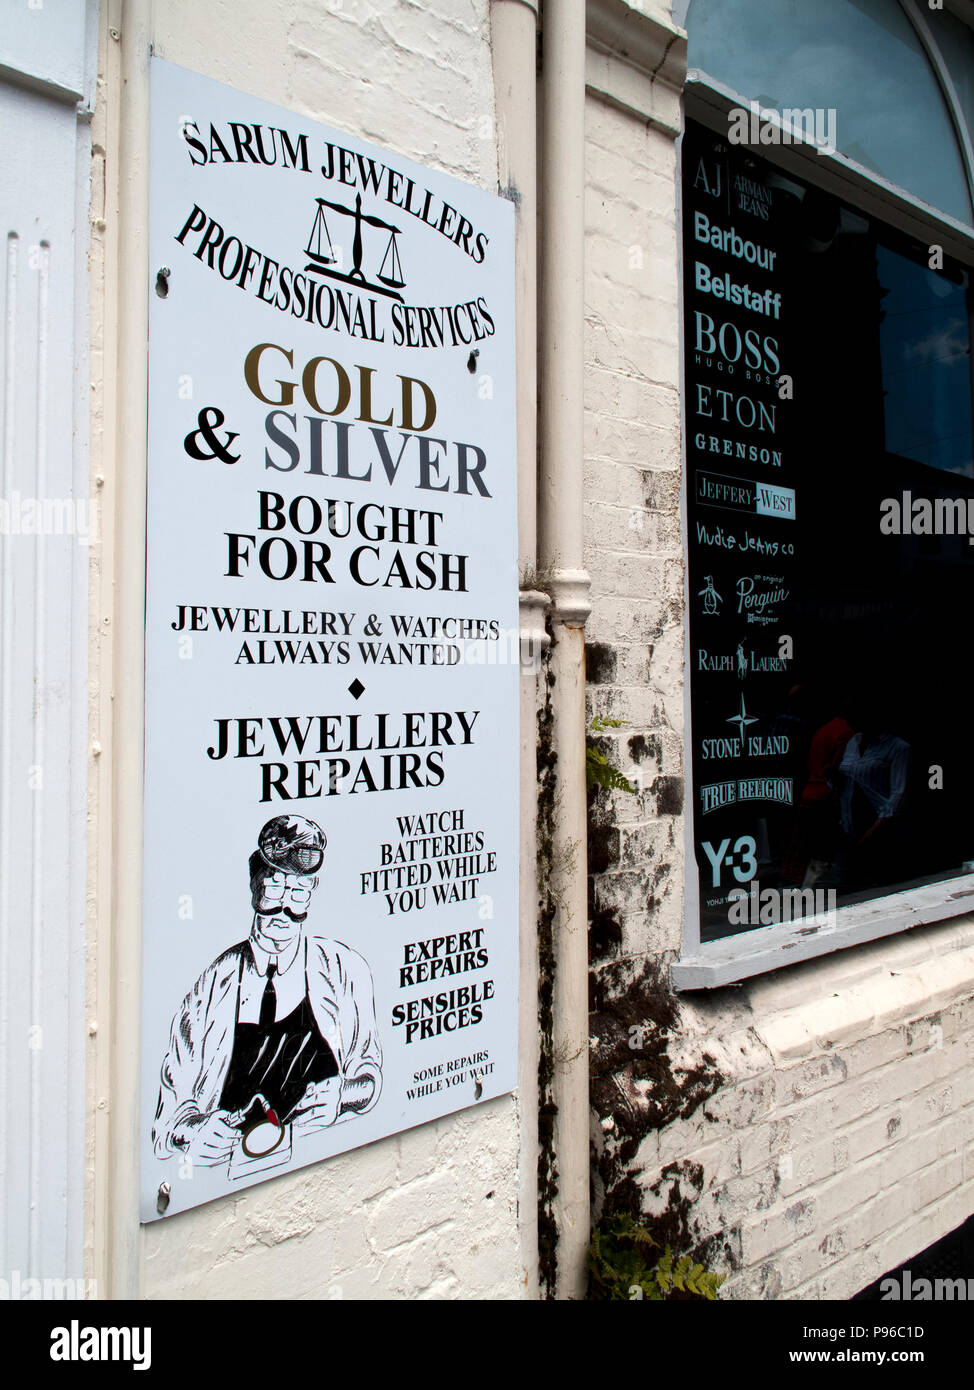 Sarum jewellers Professional Services, repairs in their own workshop advertising board Stock Photo